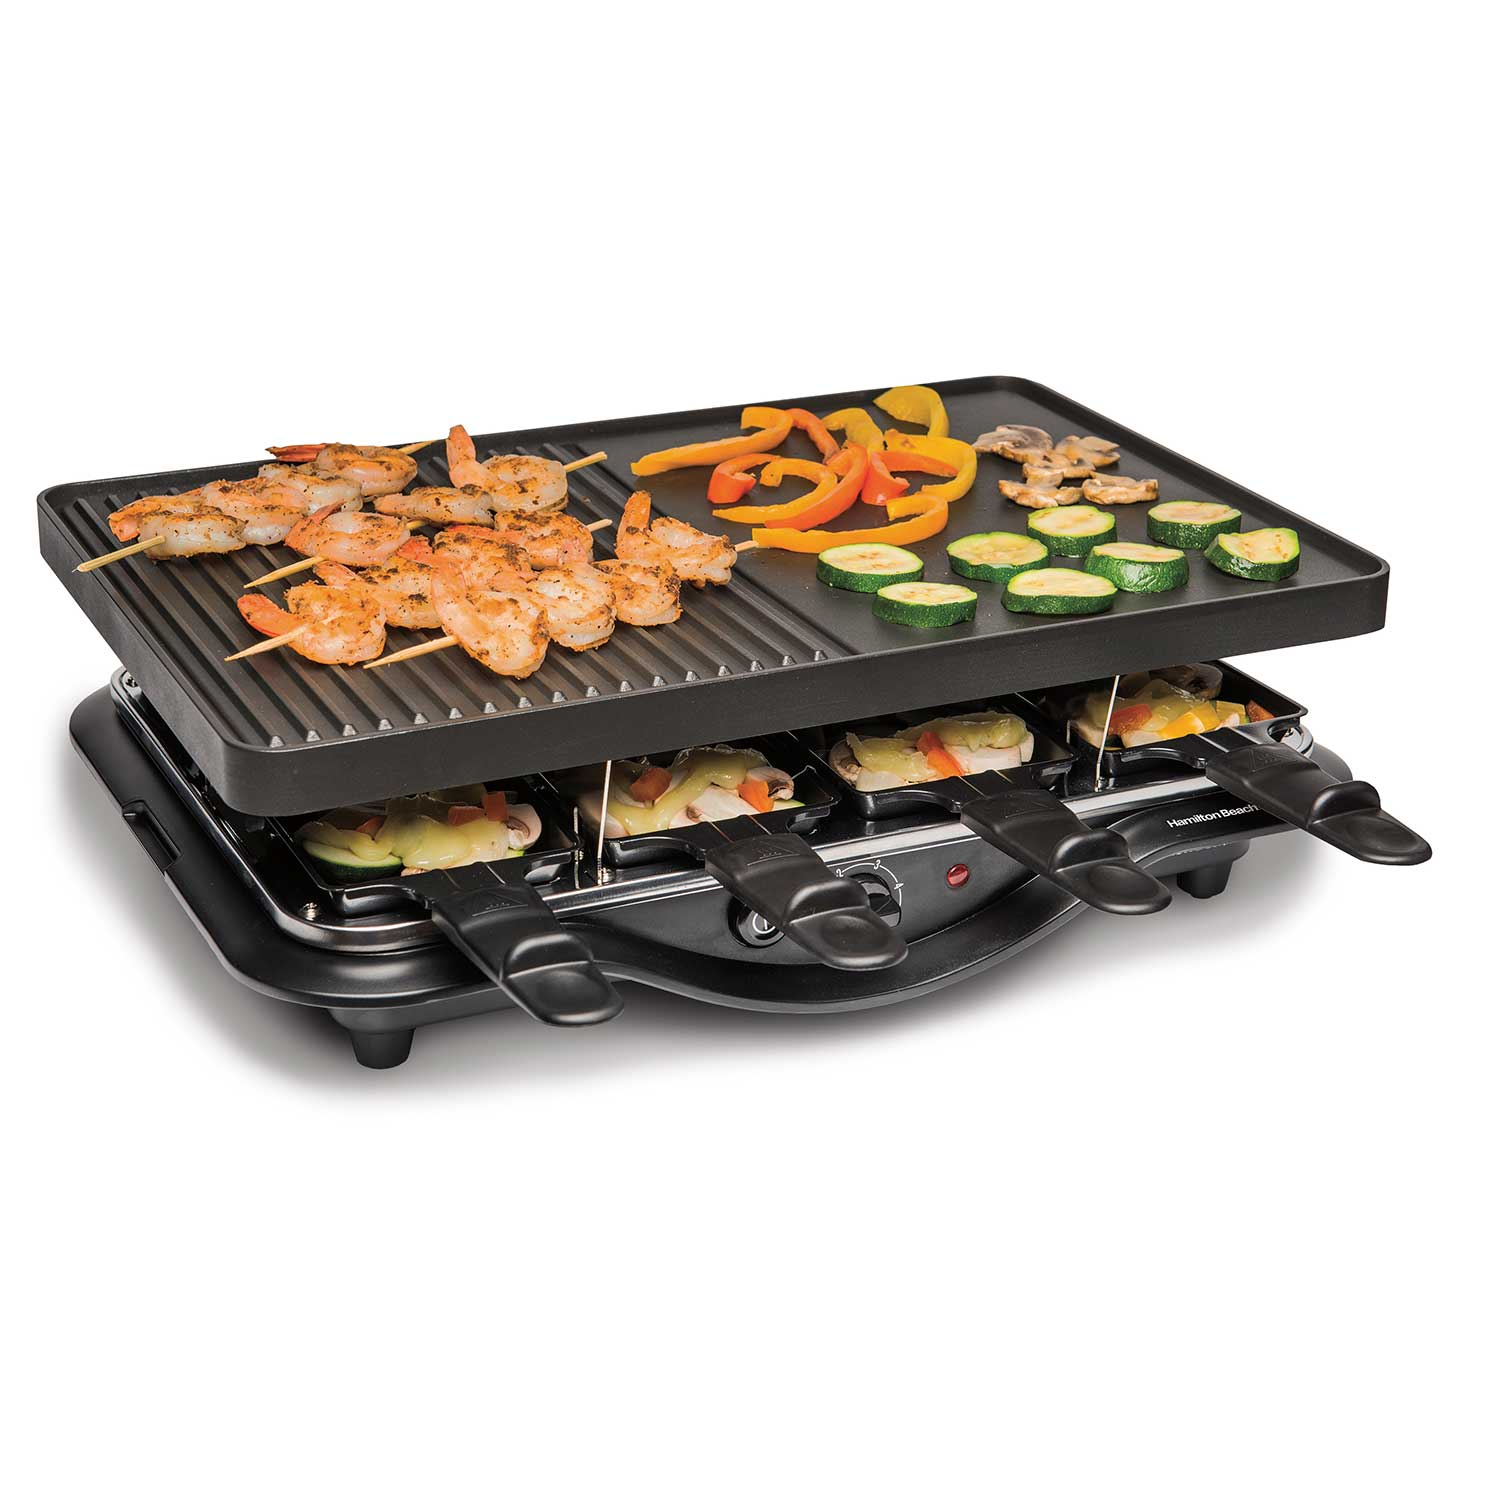 Raclette Party Grill (31612)